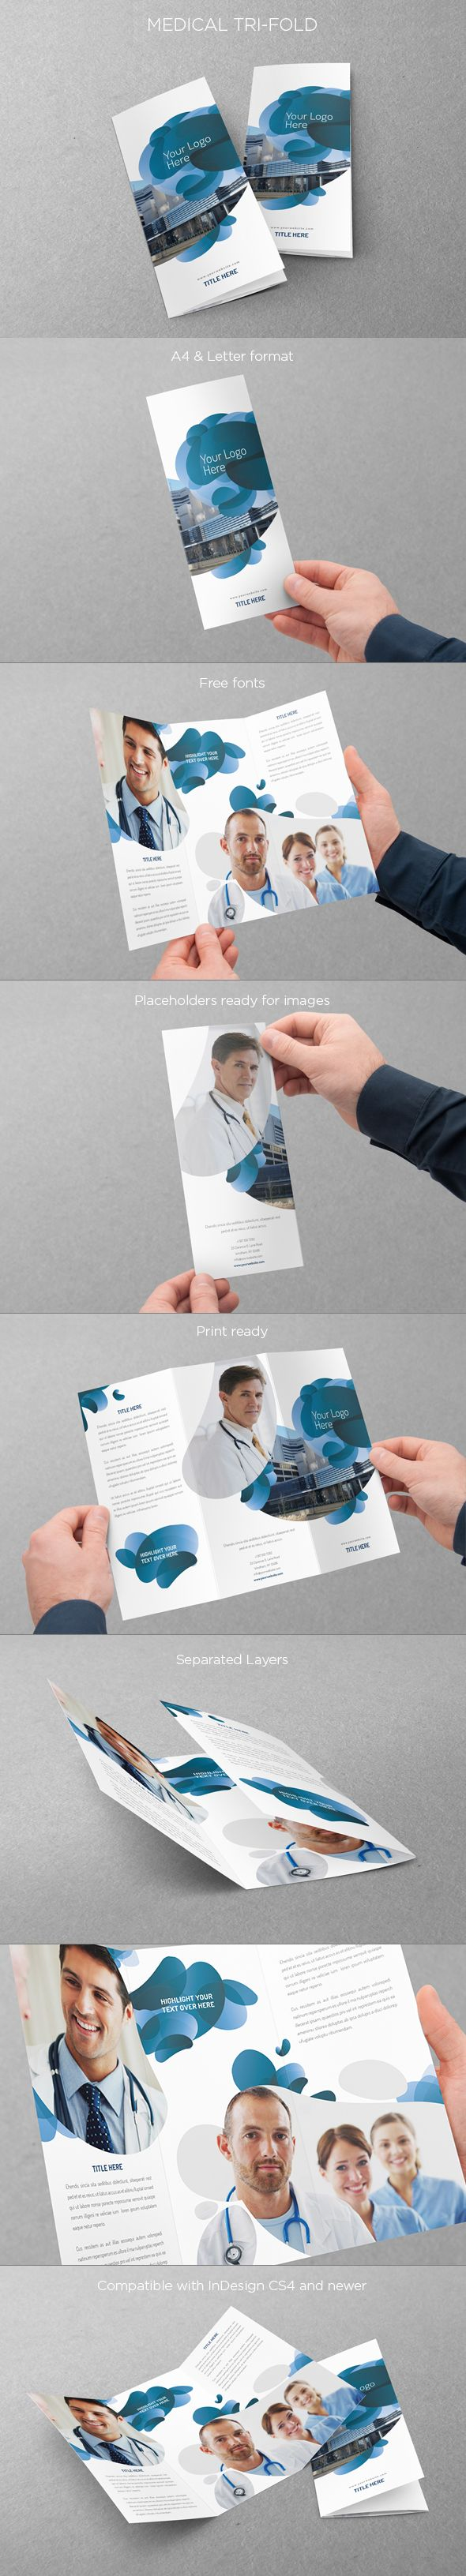 96 best d dµd d n d n n n d images on pinterest brochures med school and